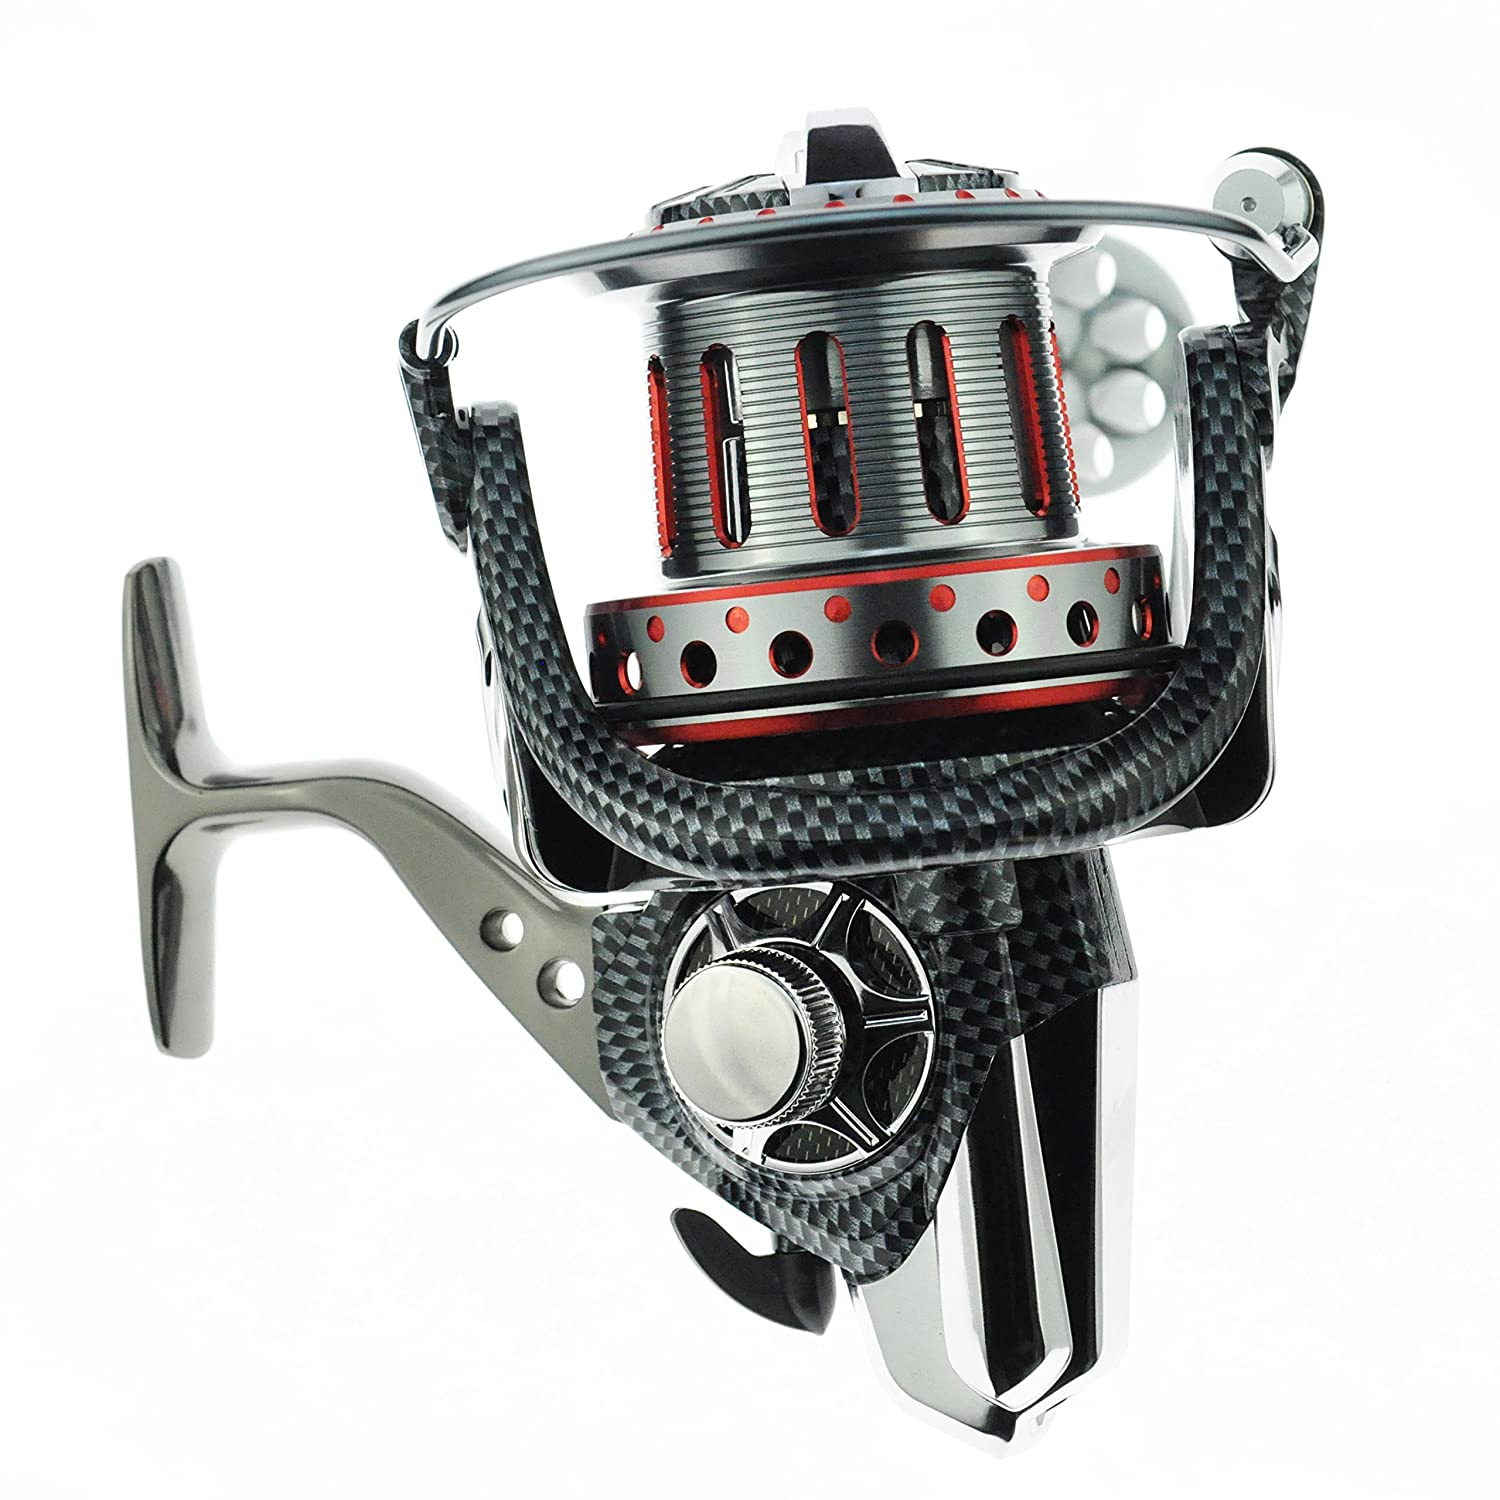 JEKOSEN Metal Spool Casting Spinning Fishing Reels Saltwater Boat Rock Fishing Reel 10000 12000 10BB 1RB Bearing 4.7 1 Gear Ratio